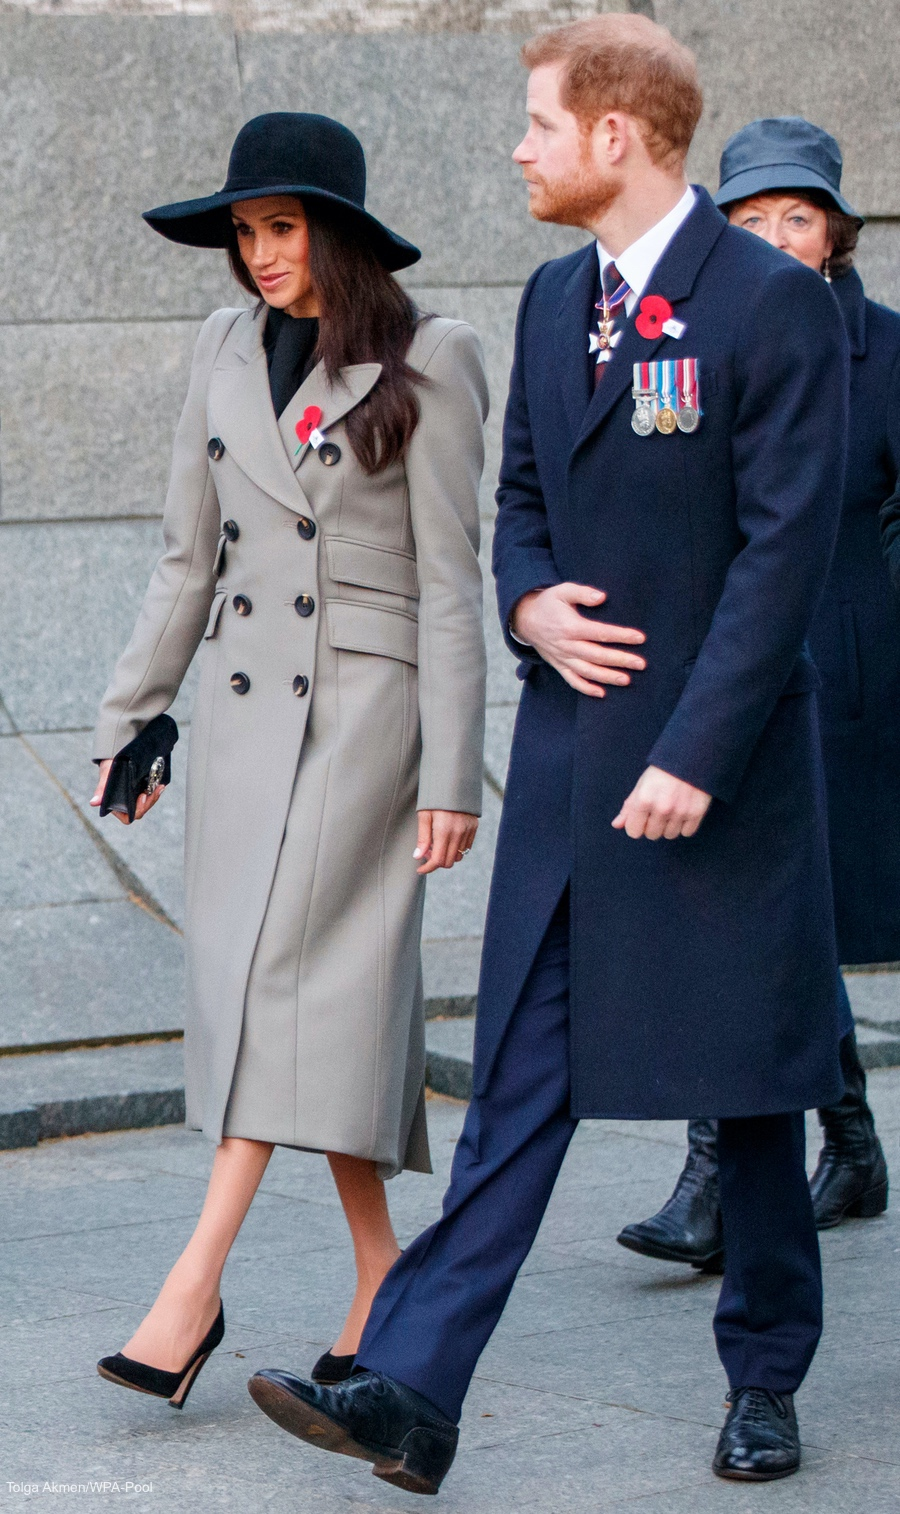 Meghan Markle and Prince Harry at the Anzac Day dawn service